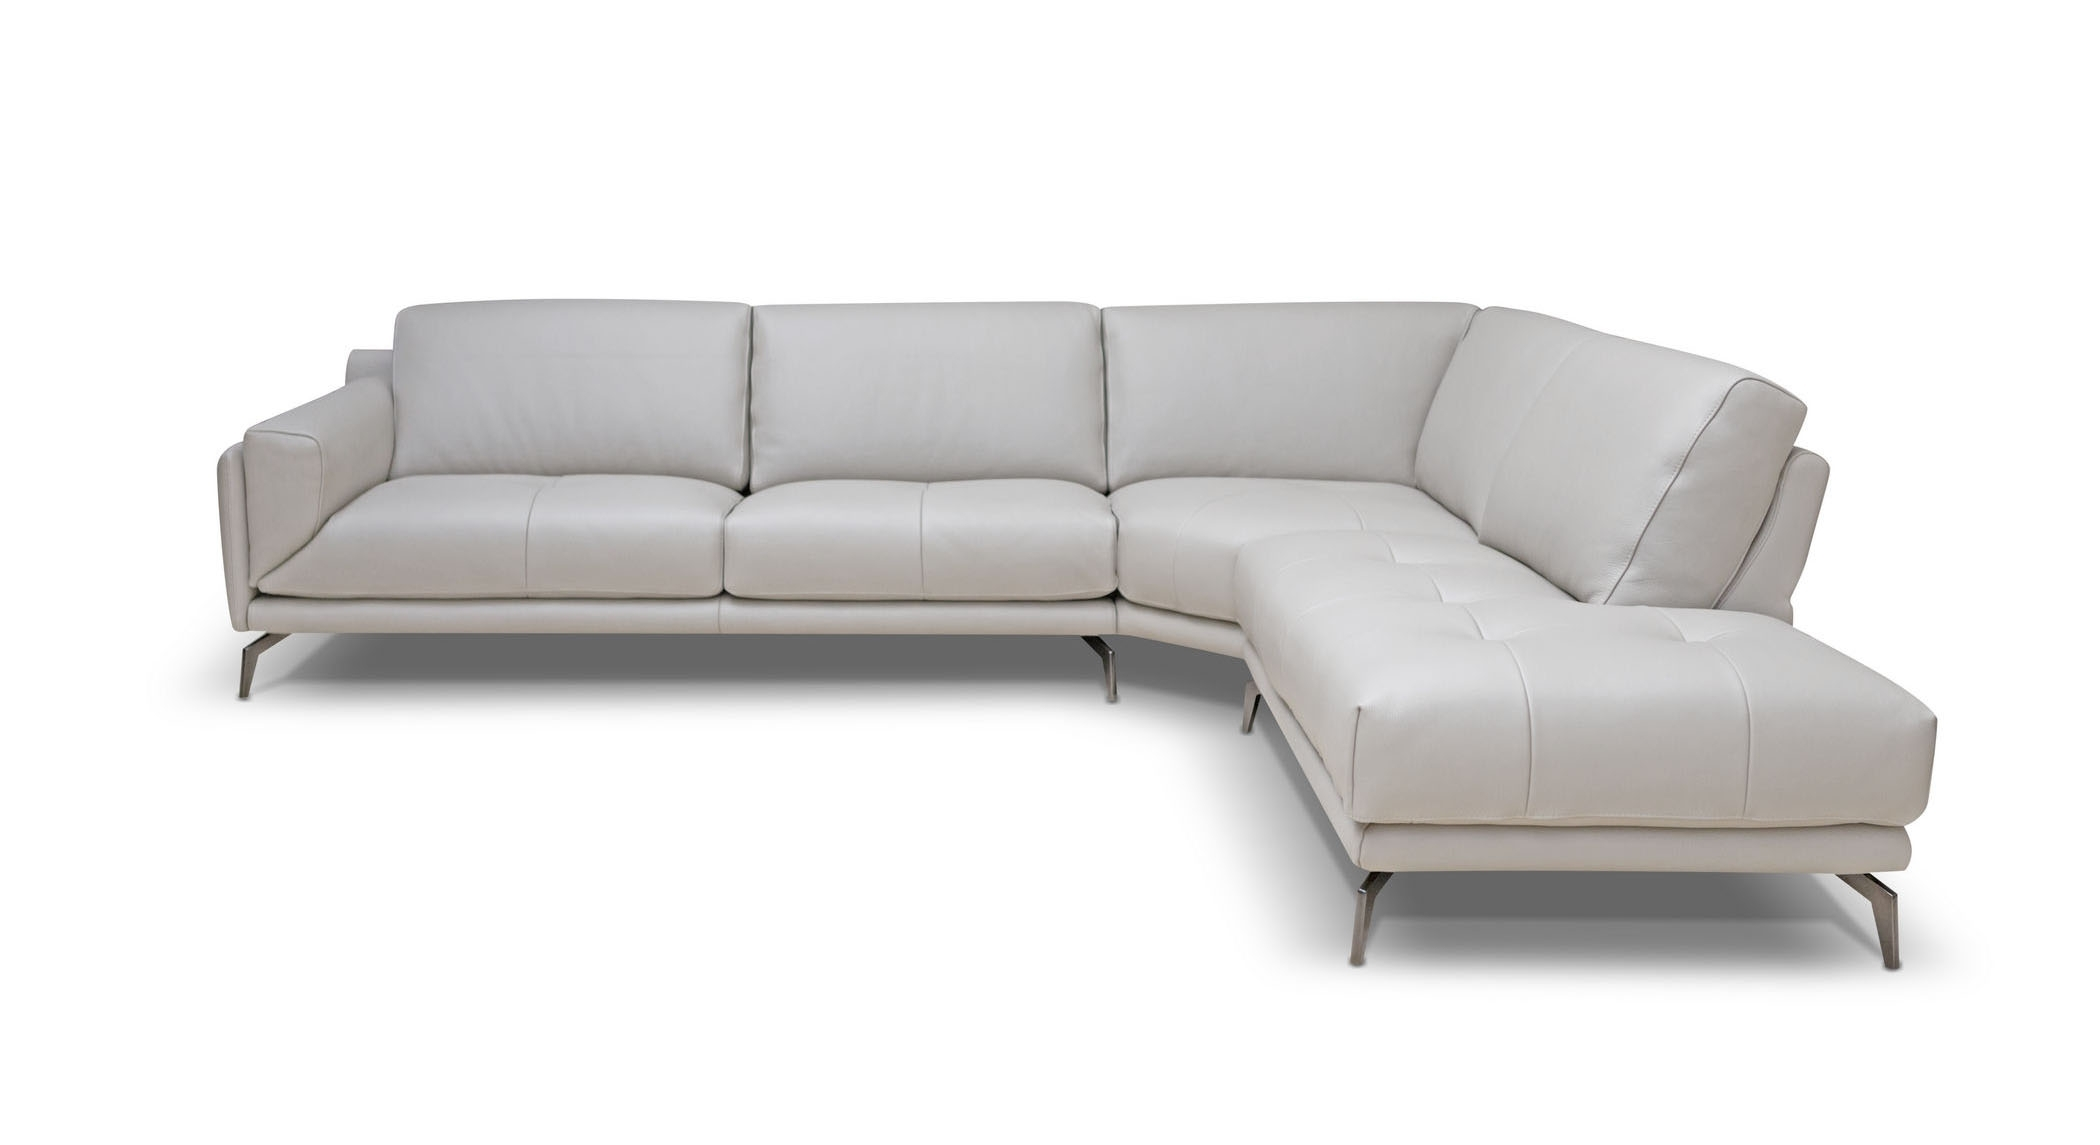 Sofas & Sectionals – Braccisofas In Glamour Ii 3 Piece Sectionals (View 23 of 25)